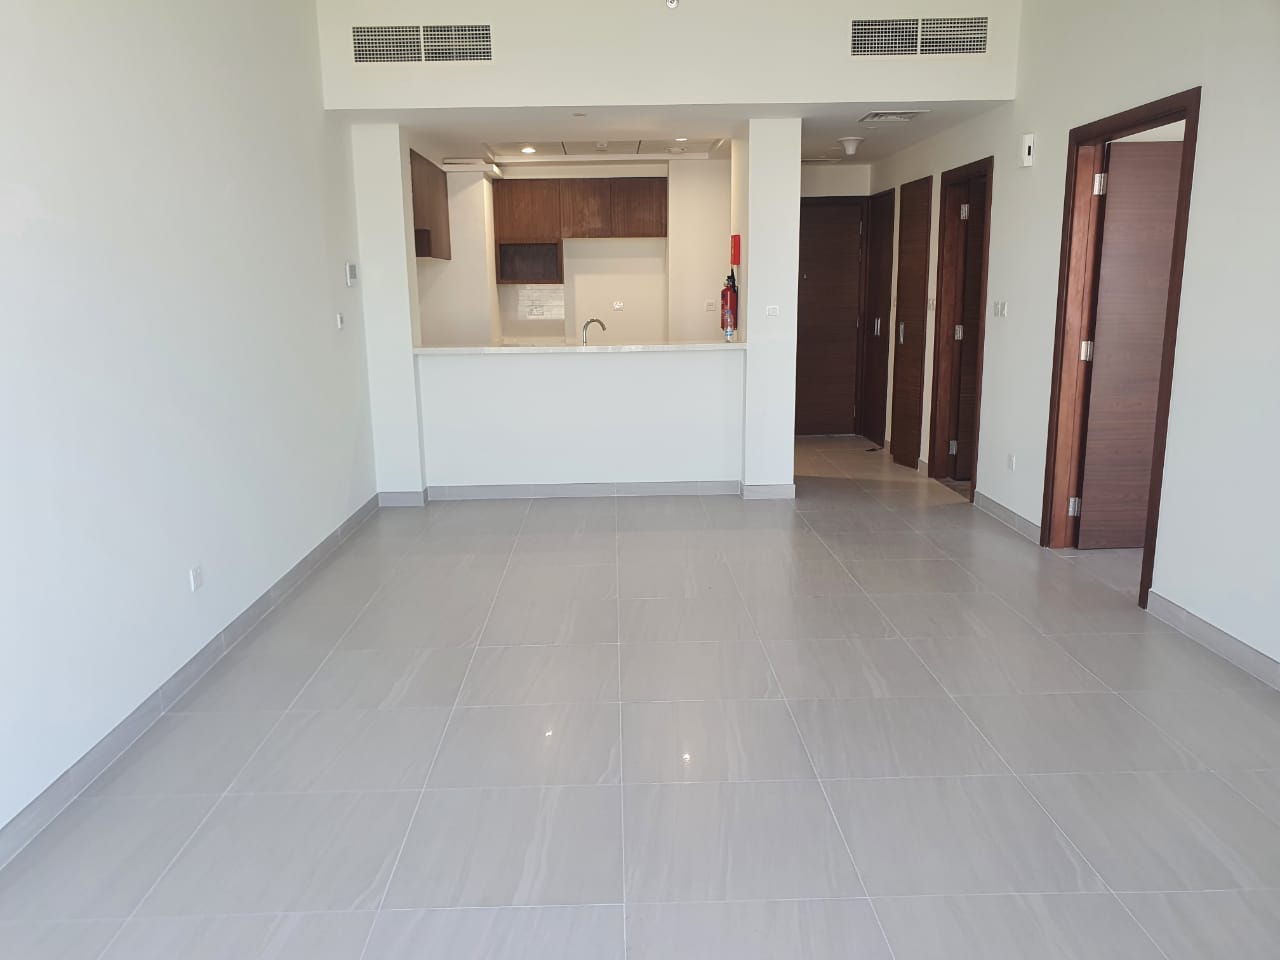 SPACIOUS 2 BDR READY FOR VIEWING & LEASING